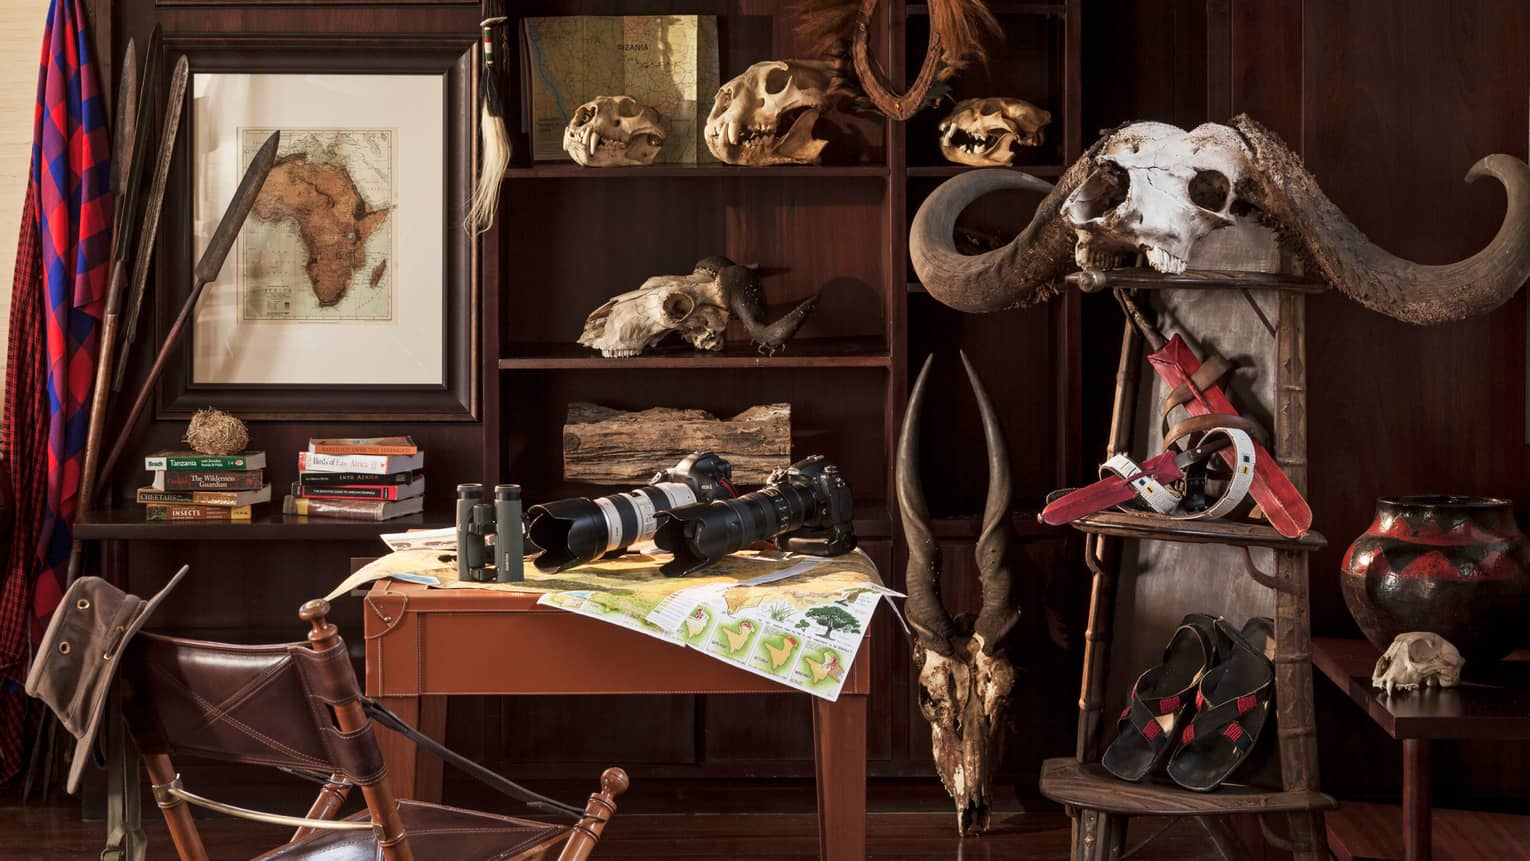 Two cameras with telephoto lenses, binoculars on Discovery Centre table, skulls